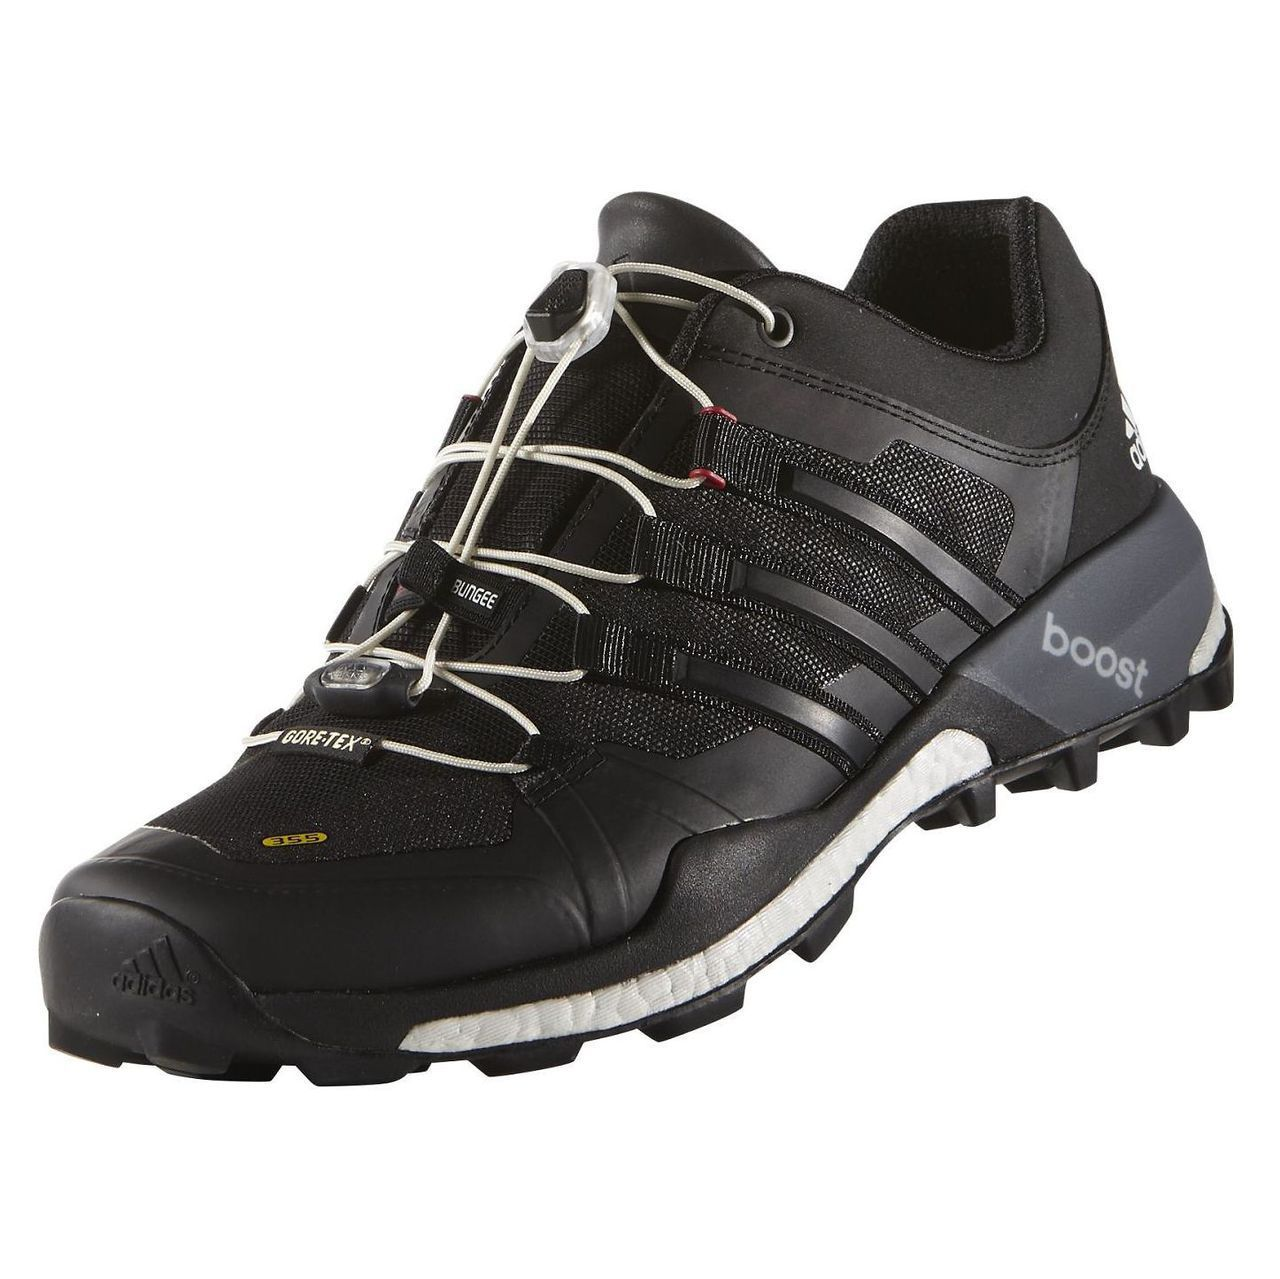 Adidas B22848 Men S Outdoor Terrex Skychaser Boost Gtx Shoes Add To Cart To See Low Price Adidas Adidas Online Outdoor Wear